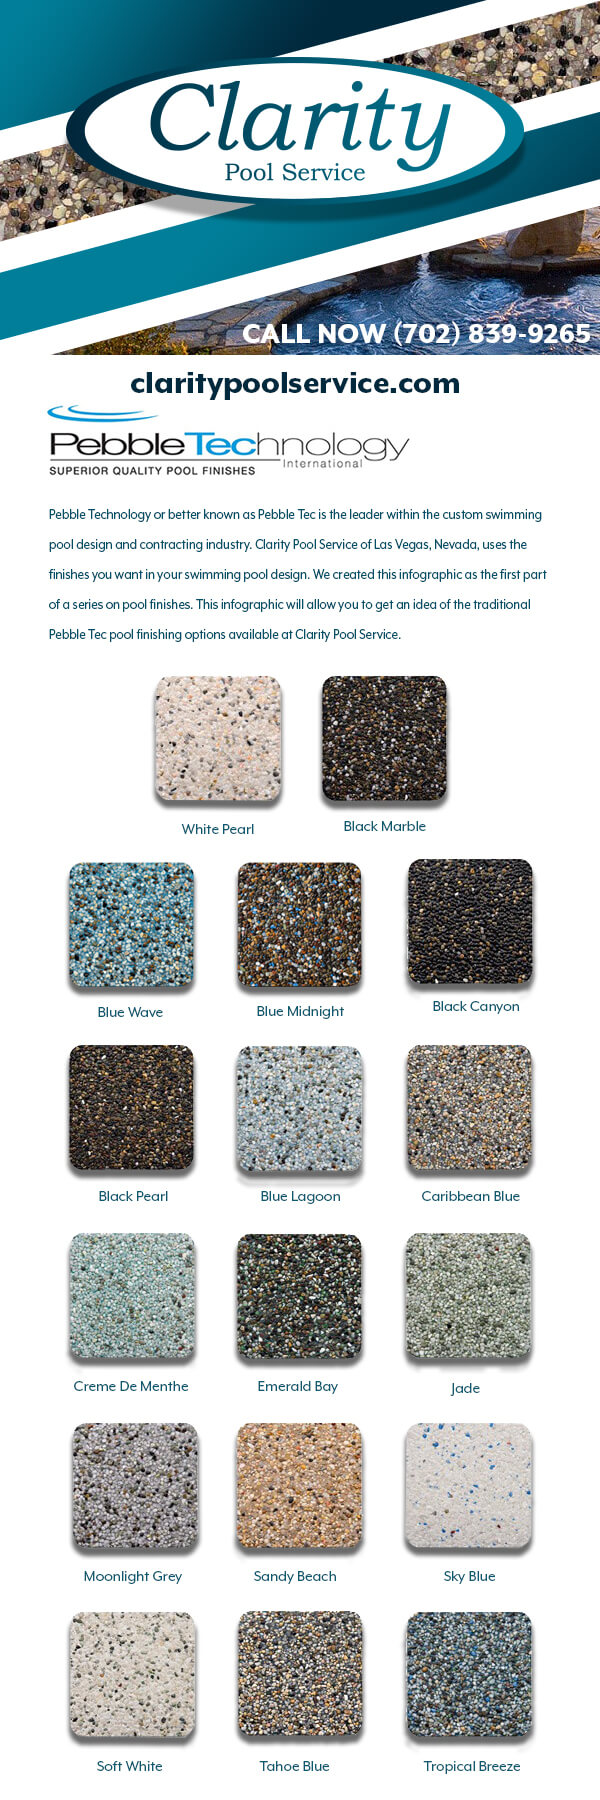 Traditional Pebble Tec Swimming Pool Finishing Material Infographic